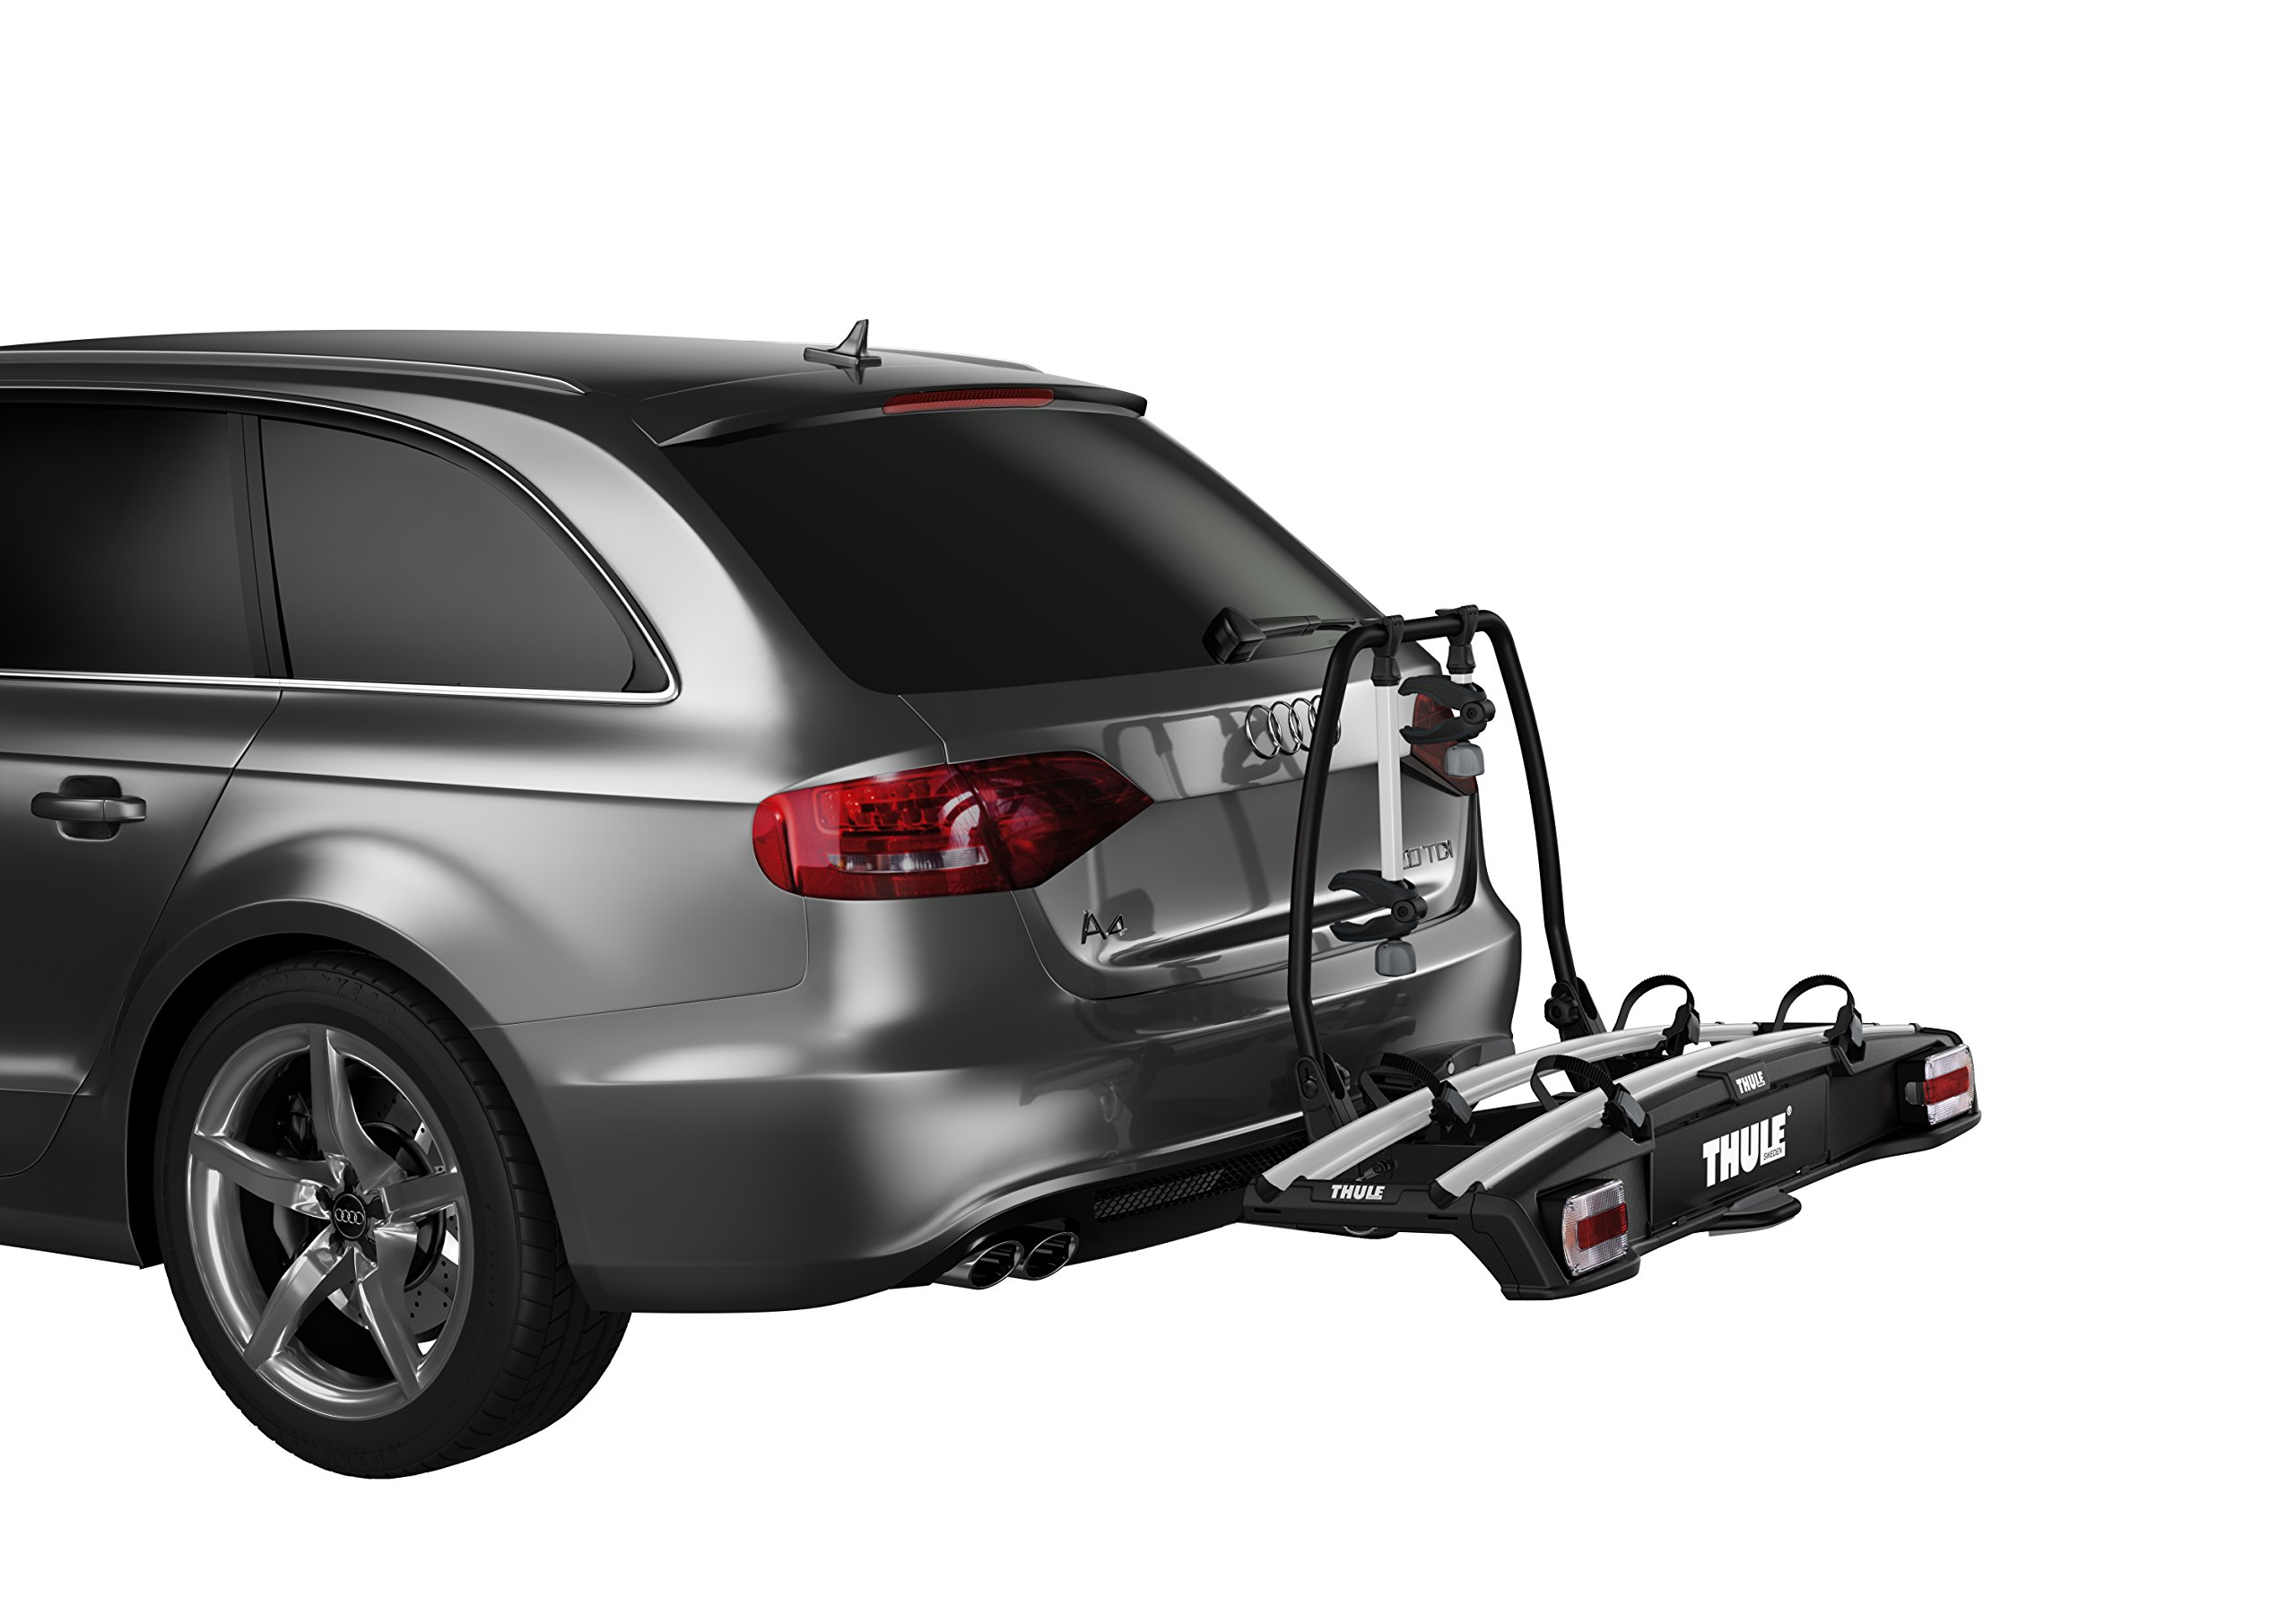 Thule 925001,Velo Compact 925, 2Bike, Towball Carrier, 7 pin 11